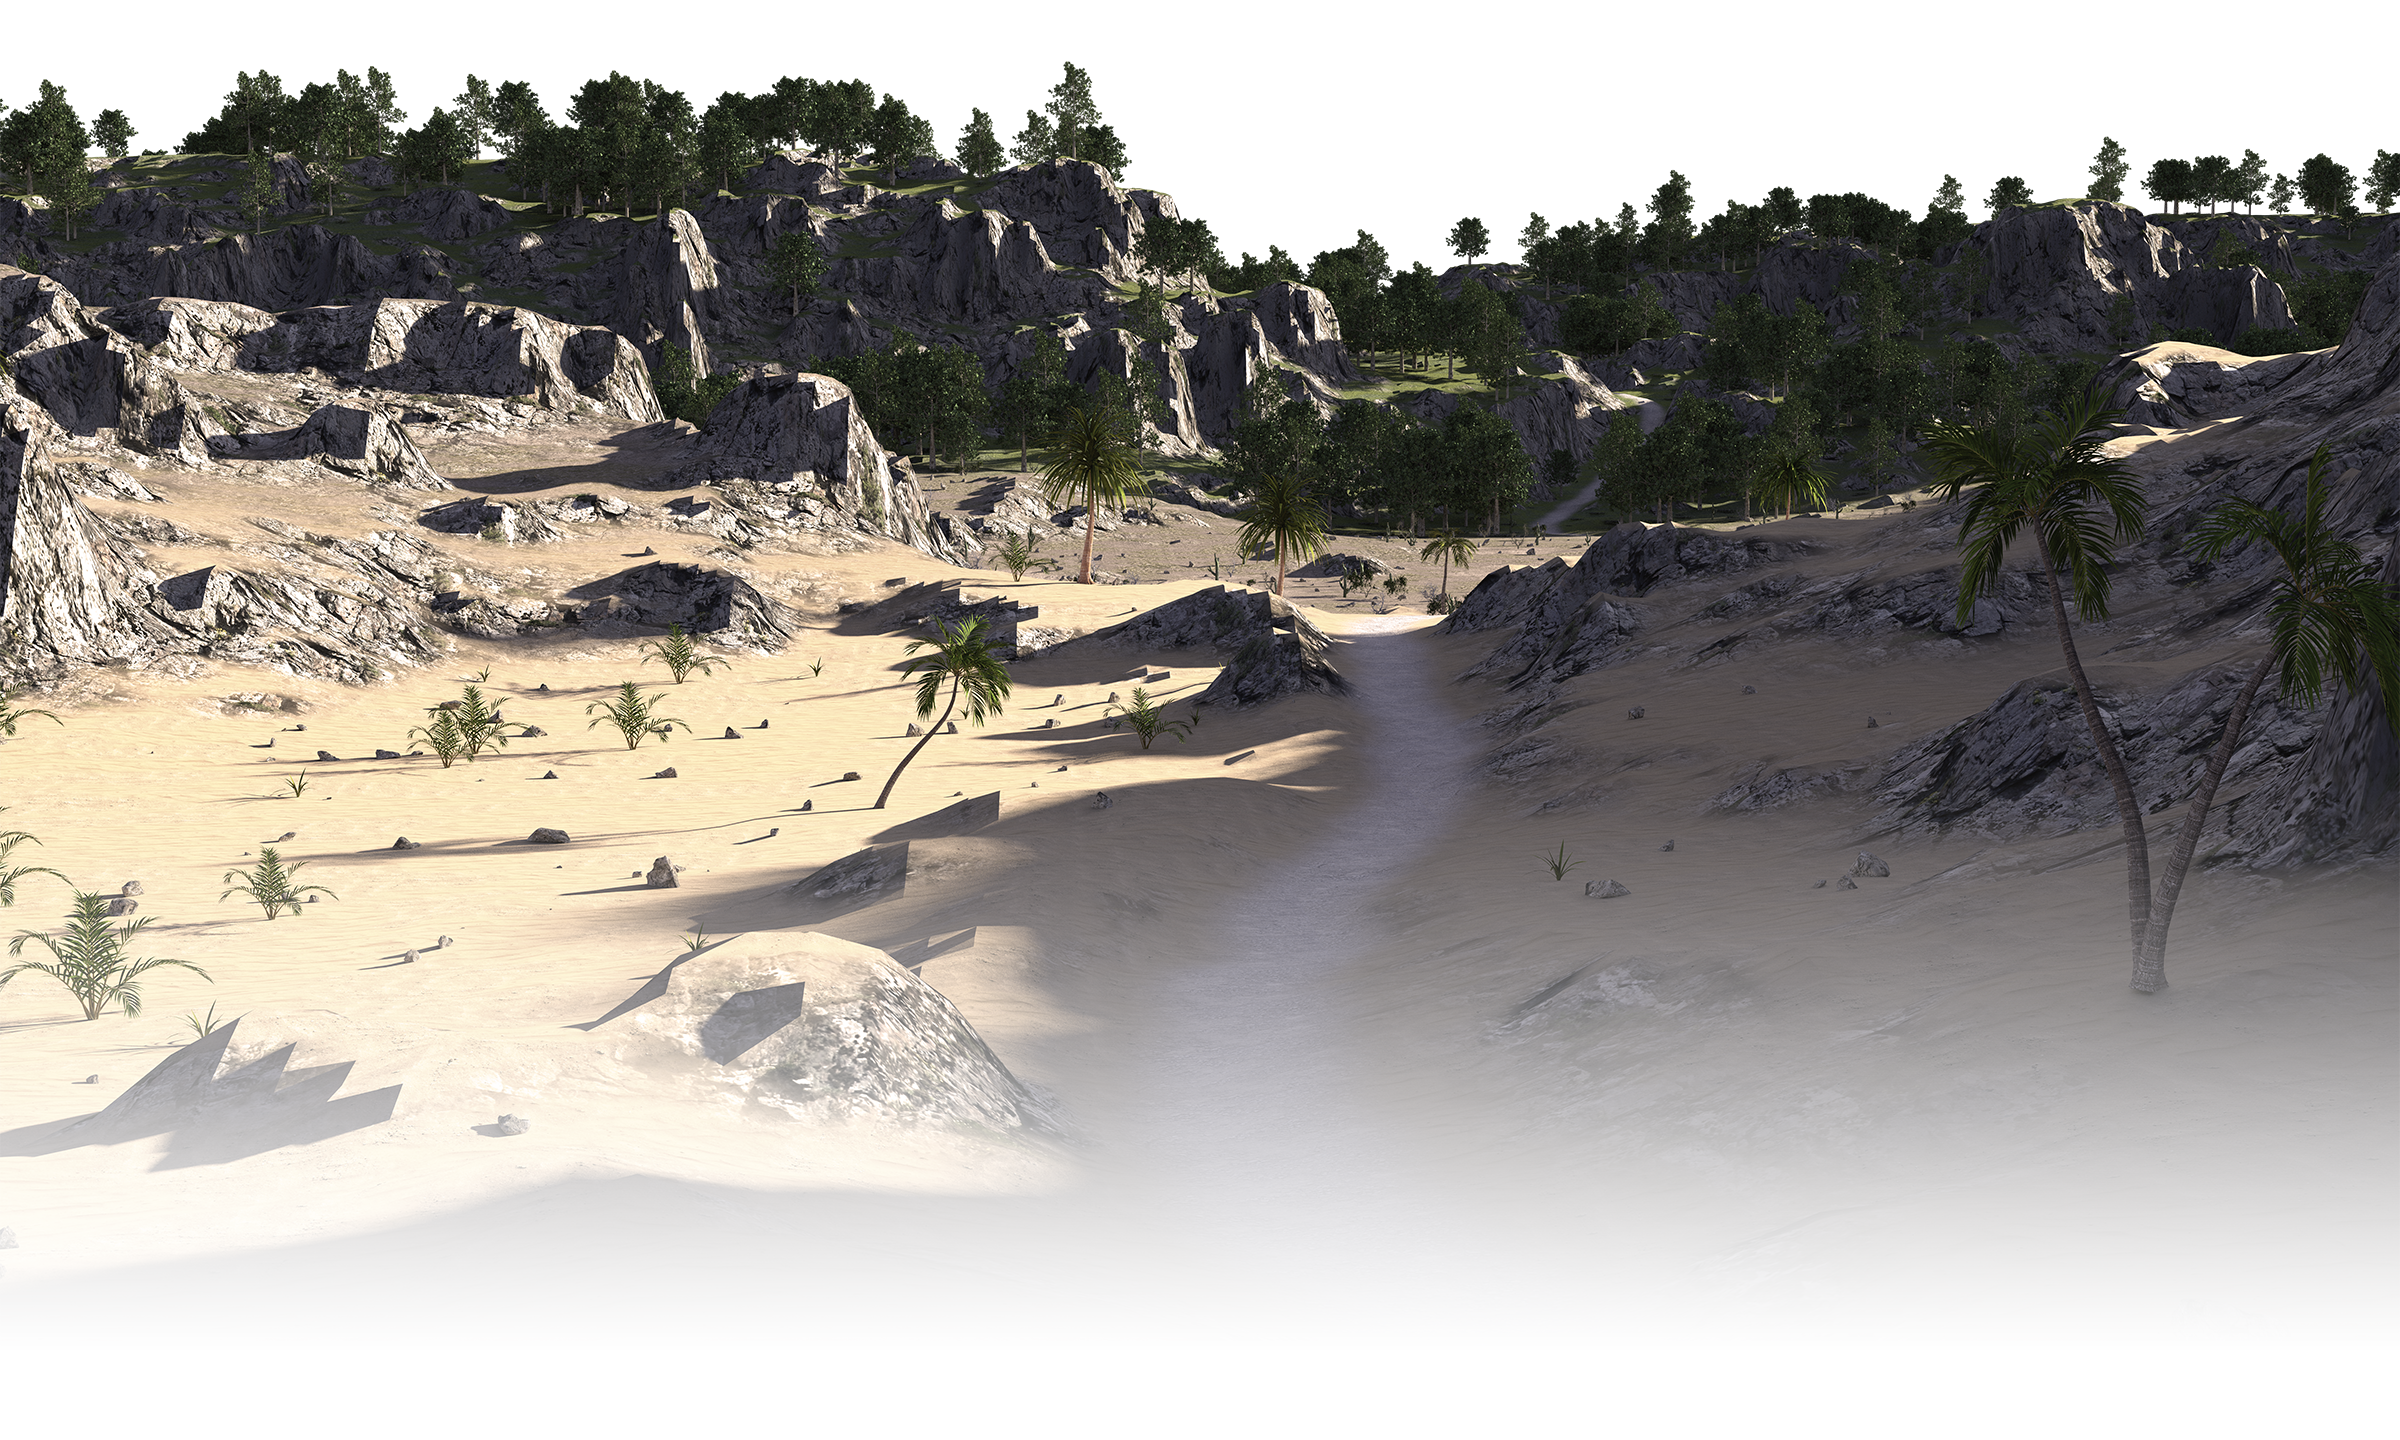 Background image of a desert leading into a forest